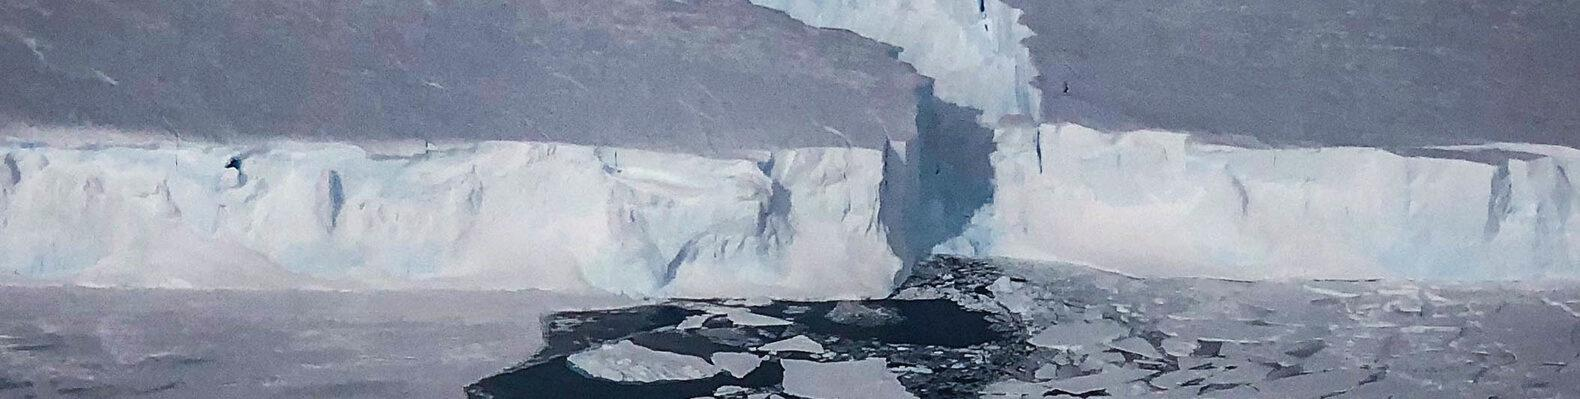 New sea ice forms in a rift created when the B-46 iceberg broke off from Pine Island Glacier